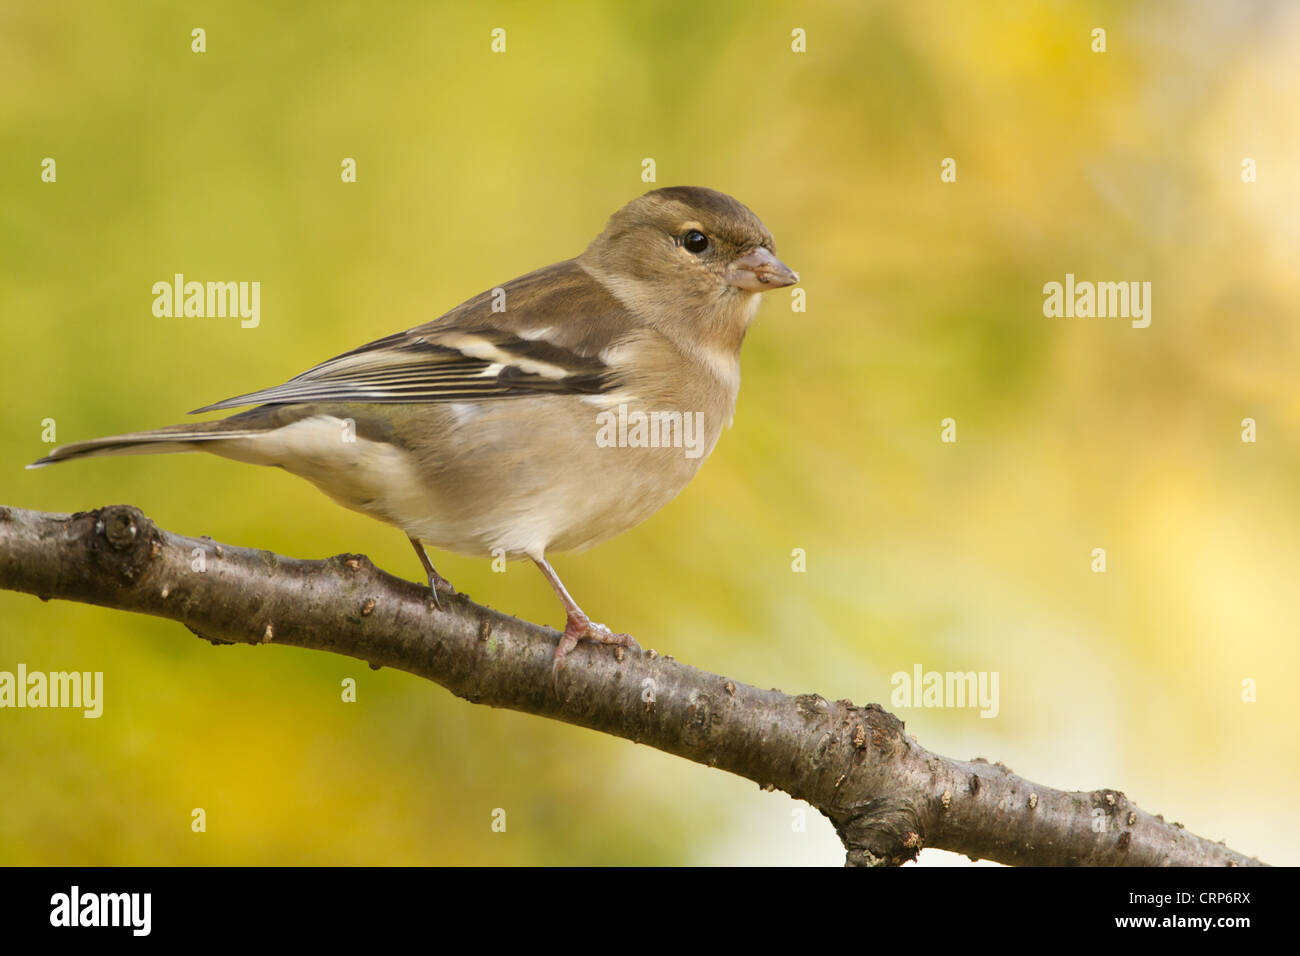 Chaffinch (Fringilla coelebs) adult female, perched on branch, Norfolk, England, november - Stock Image